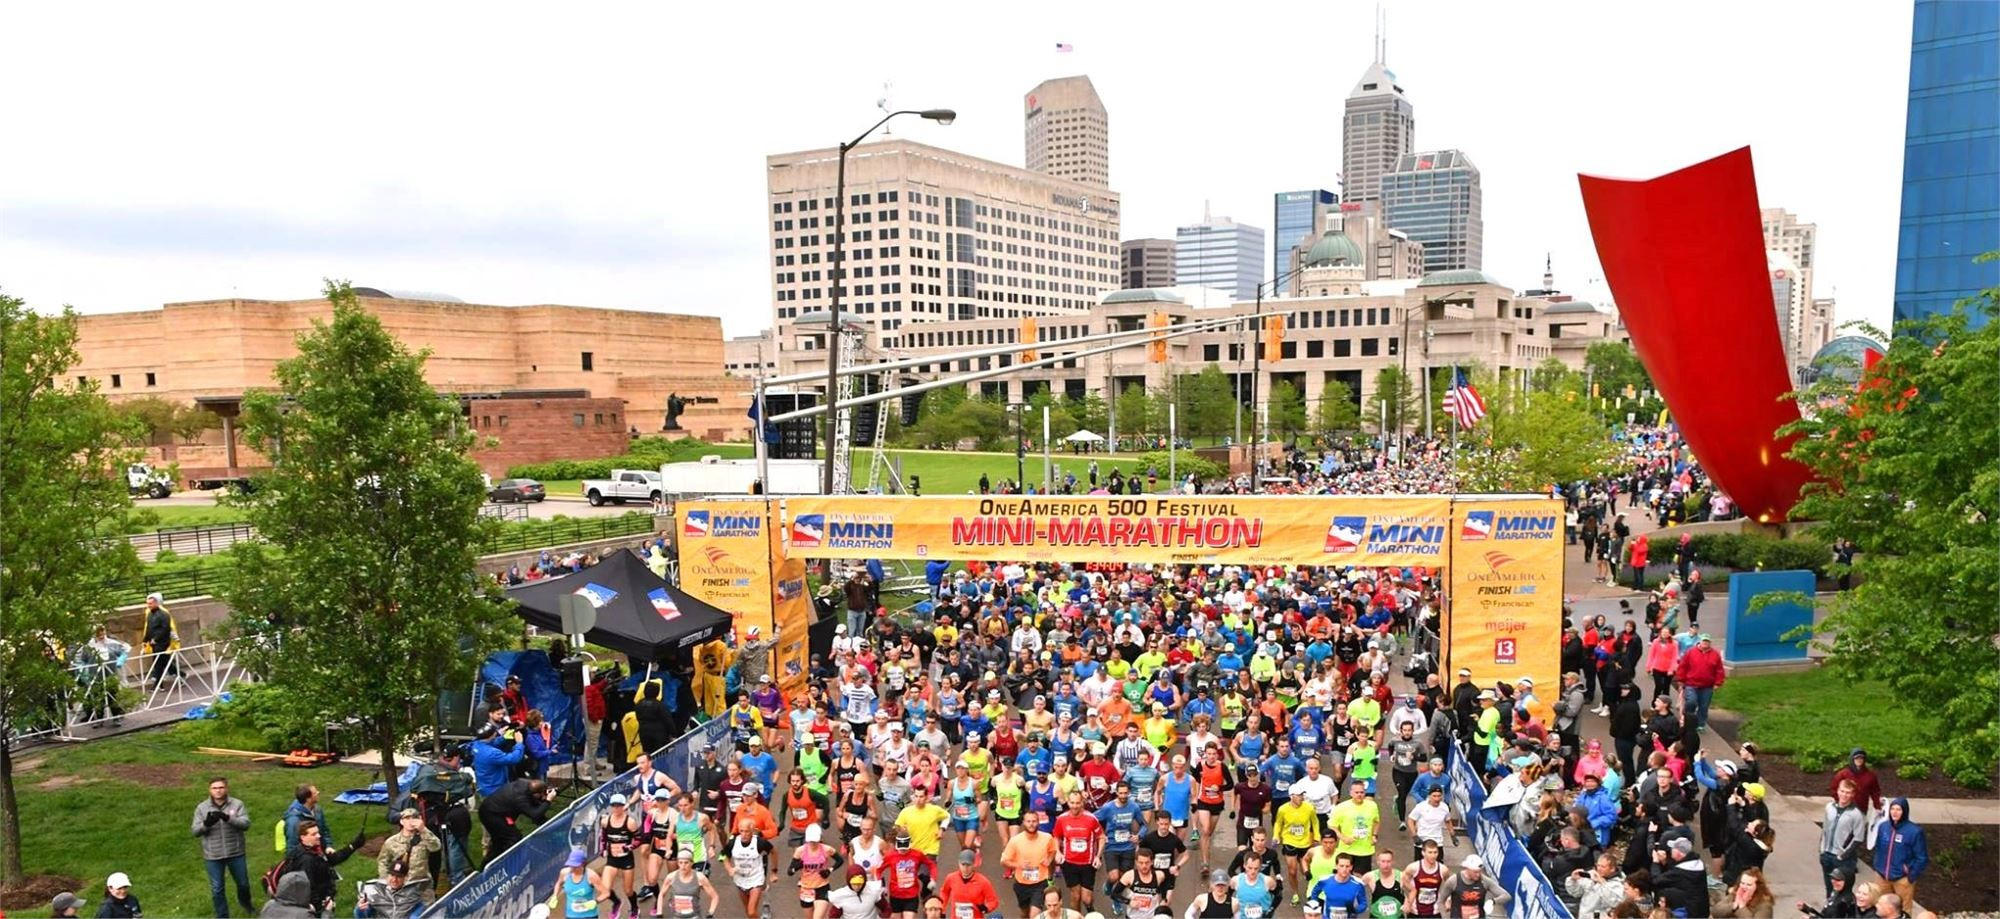 The OneAmerica 500 Festival Mini-Marathon has been named Best Half Marathon in America in 2018